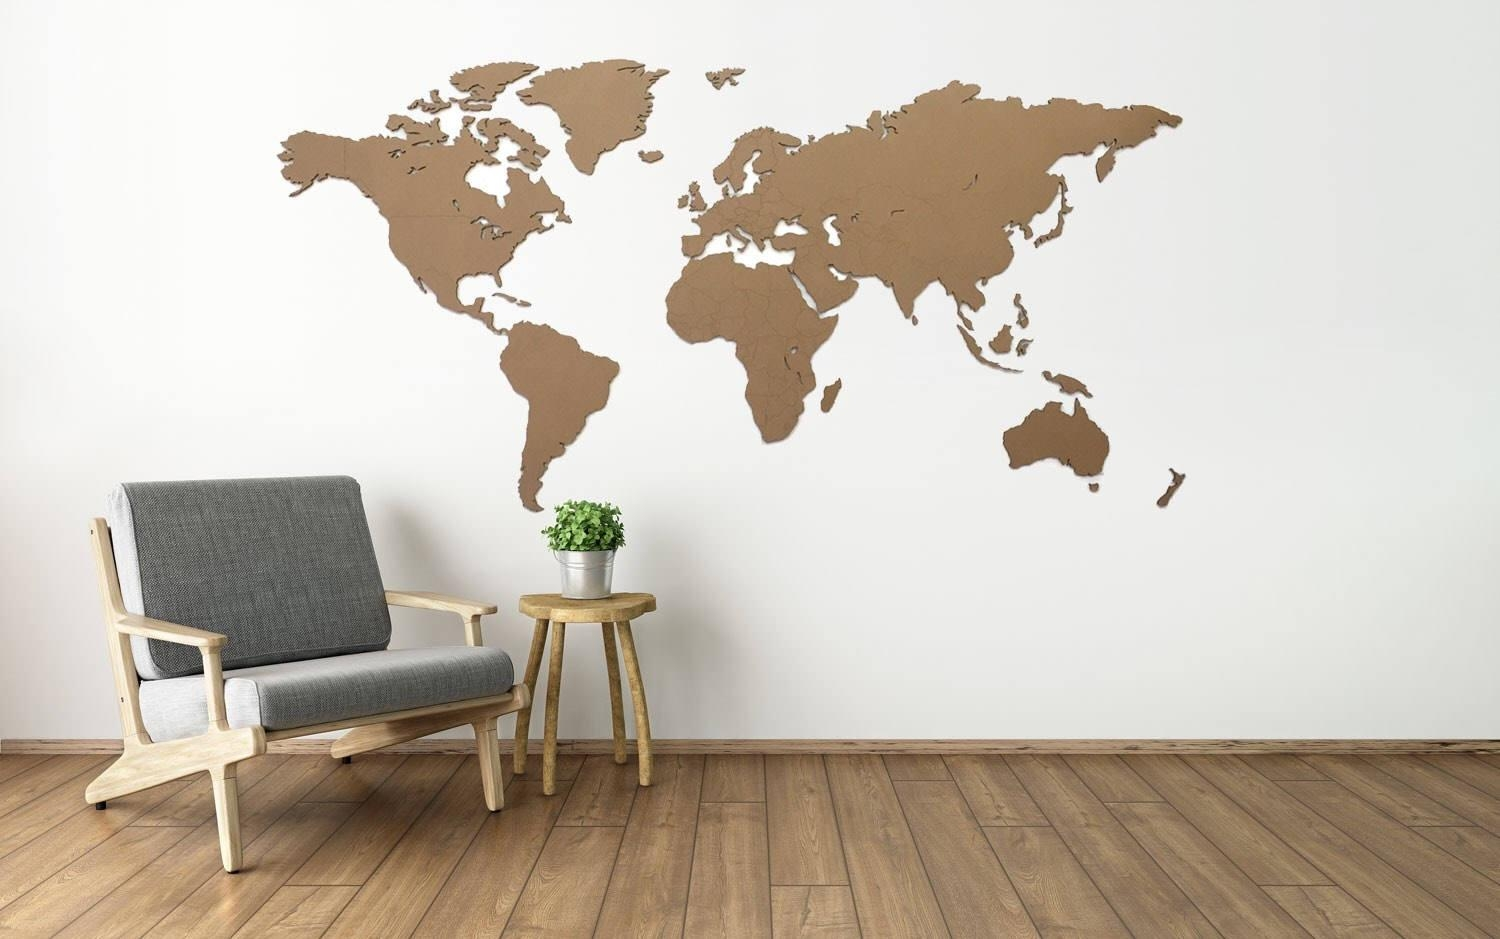 Wooden World Map Laser Cut 122Cm X 61Cm Regarding Wooden World Map Wall Art (Image 13 of 20)